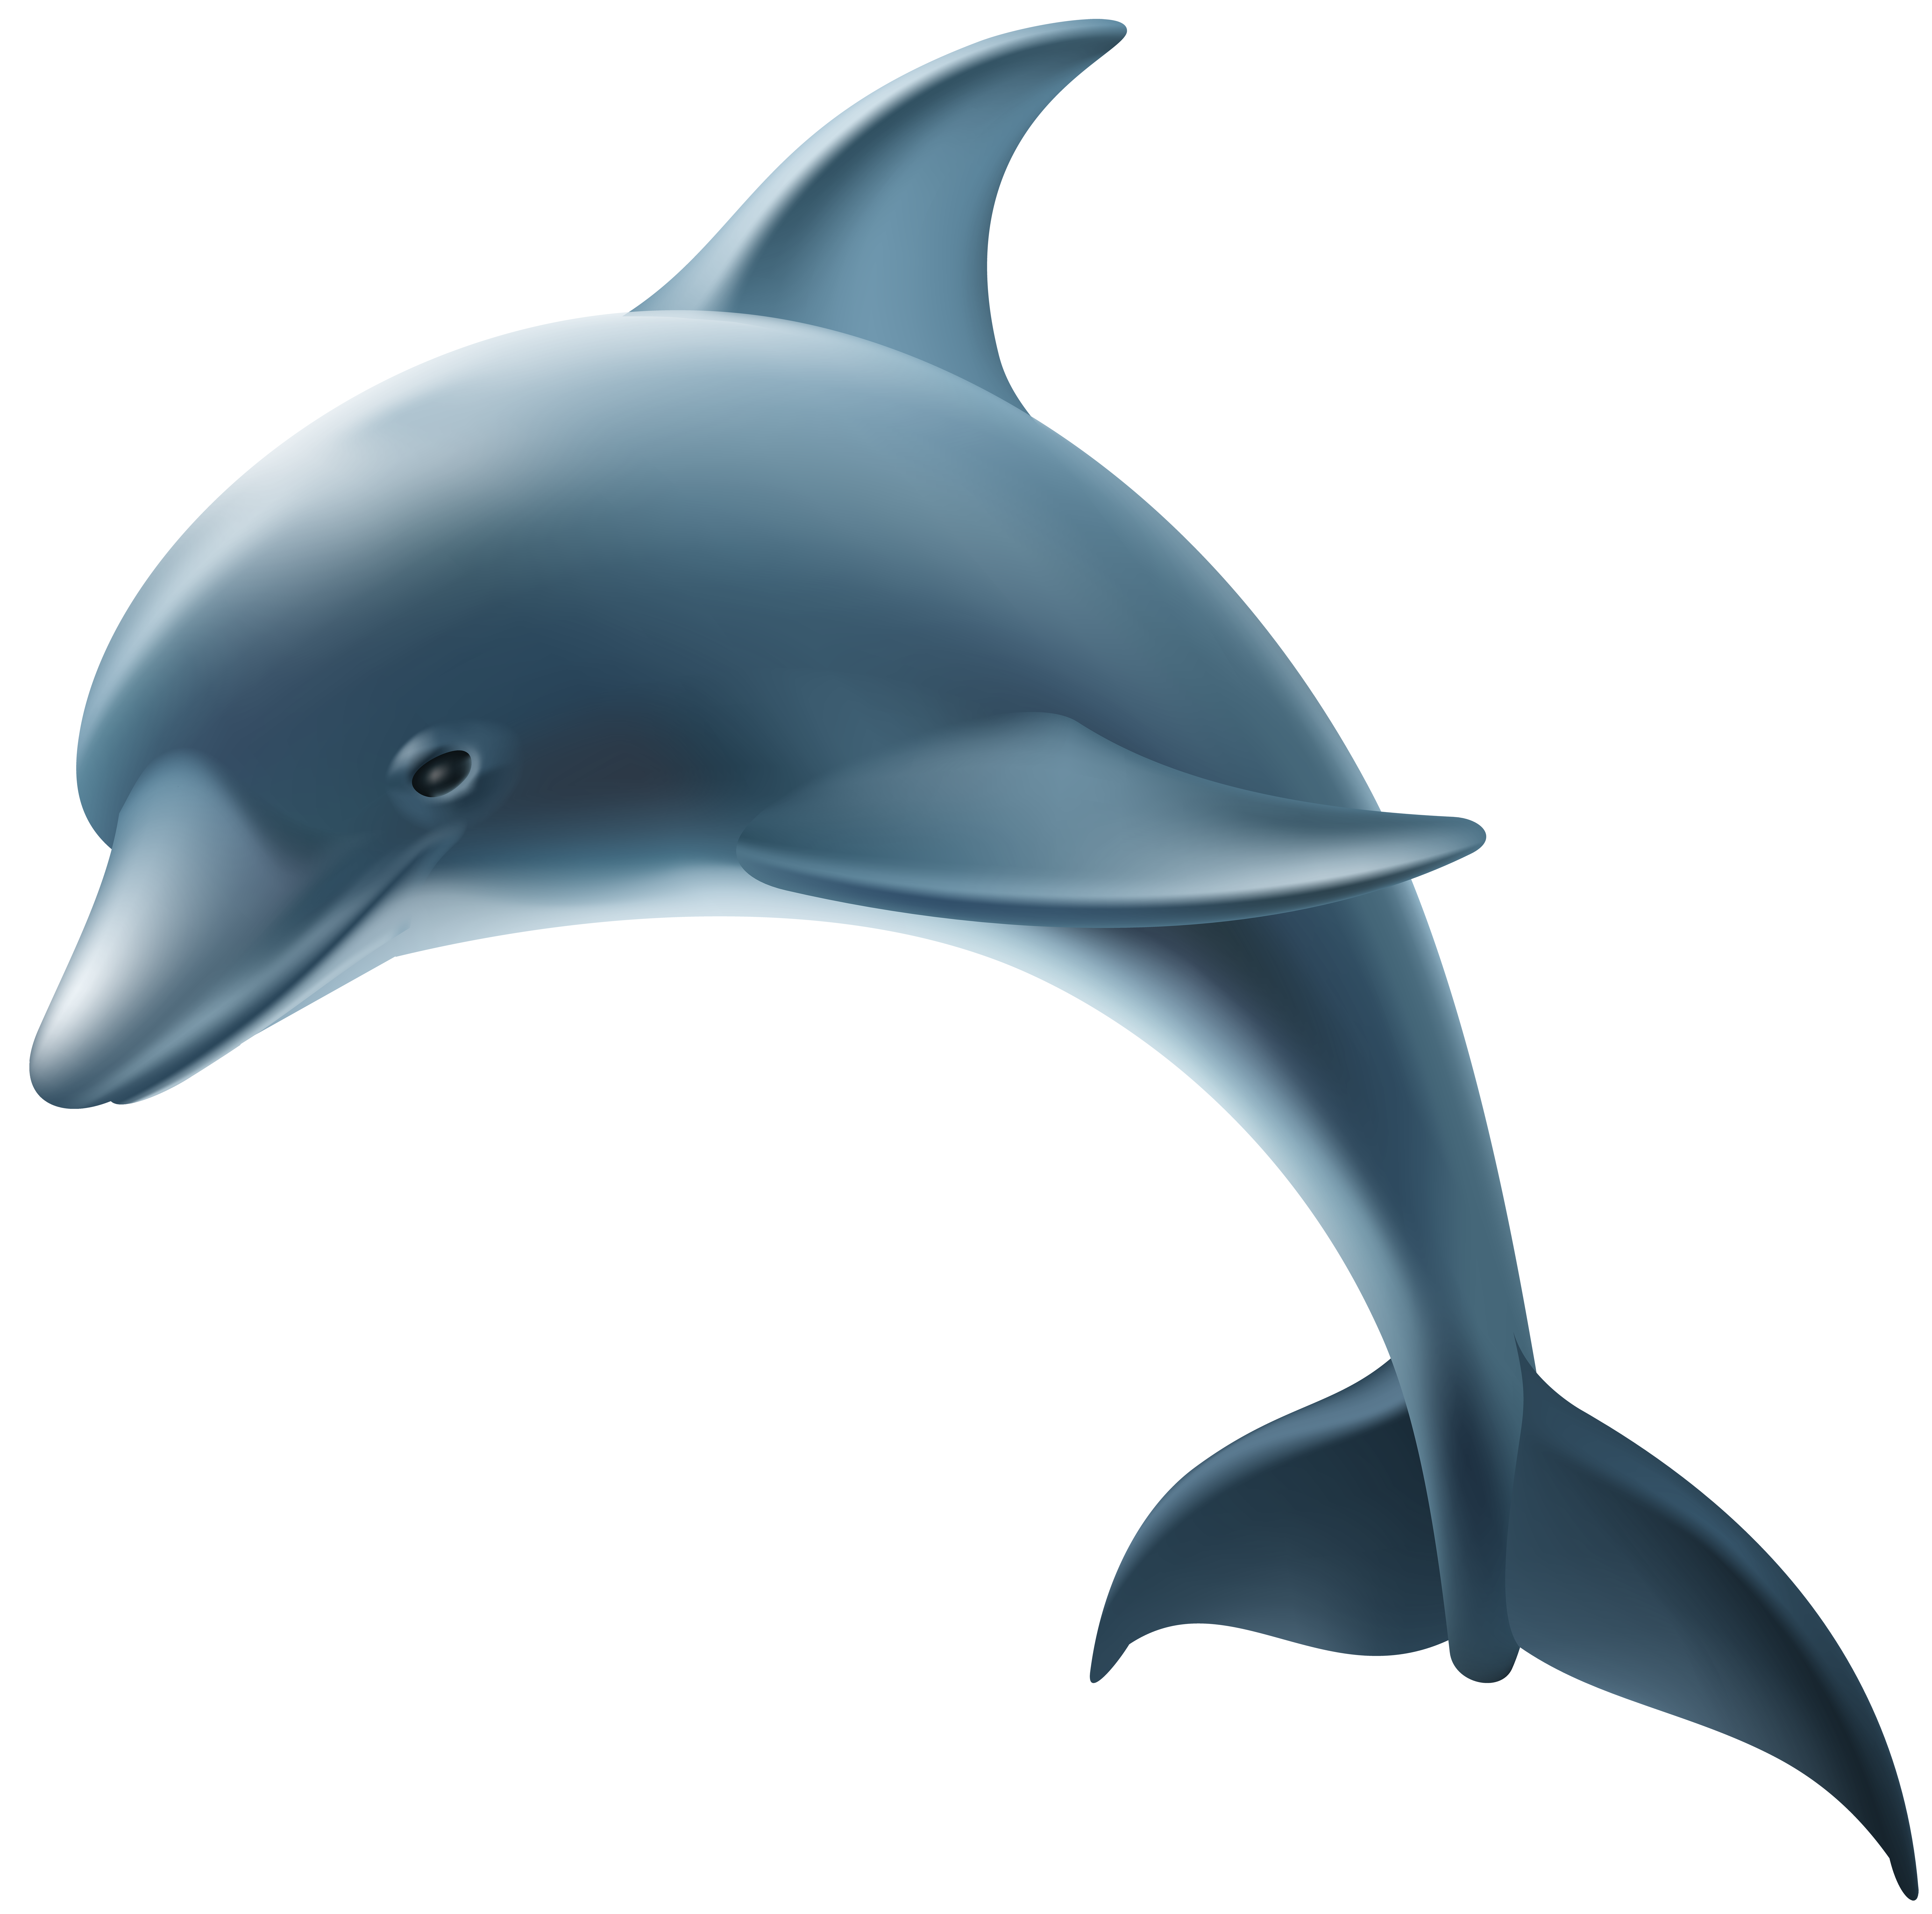 Png clip art image. Dolphin clipart amazon river dolphin